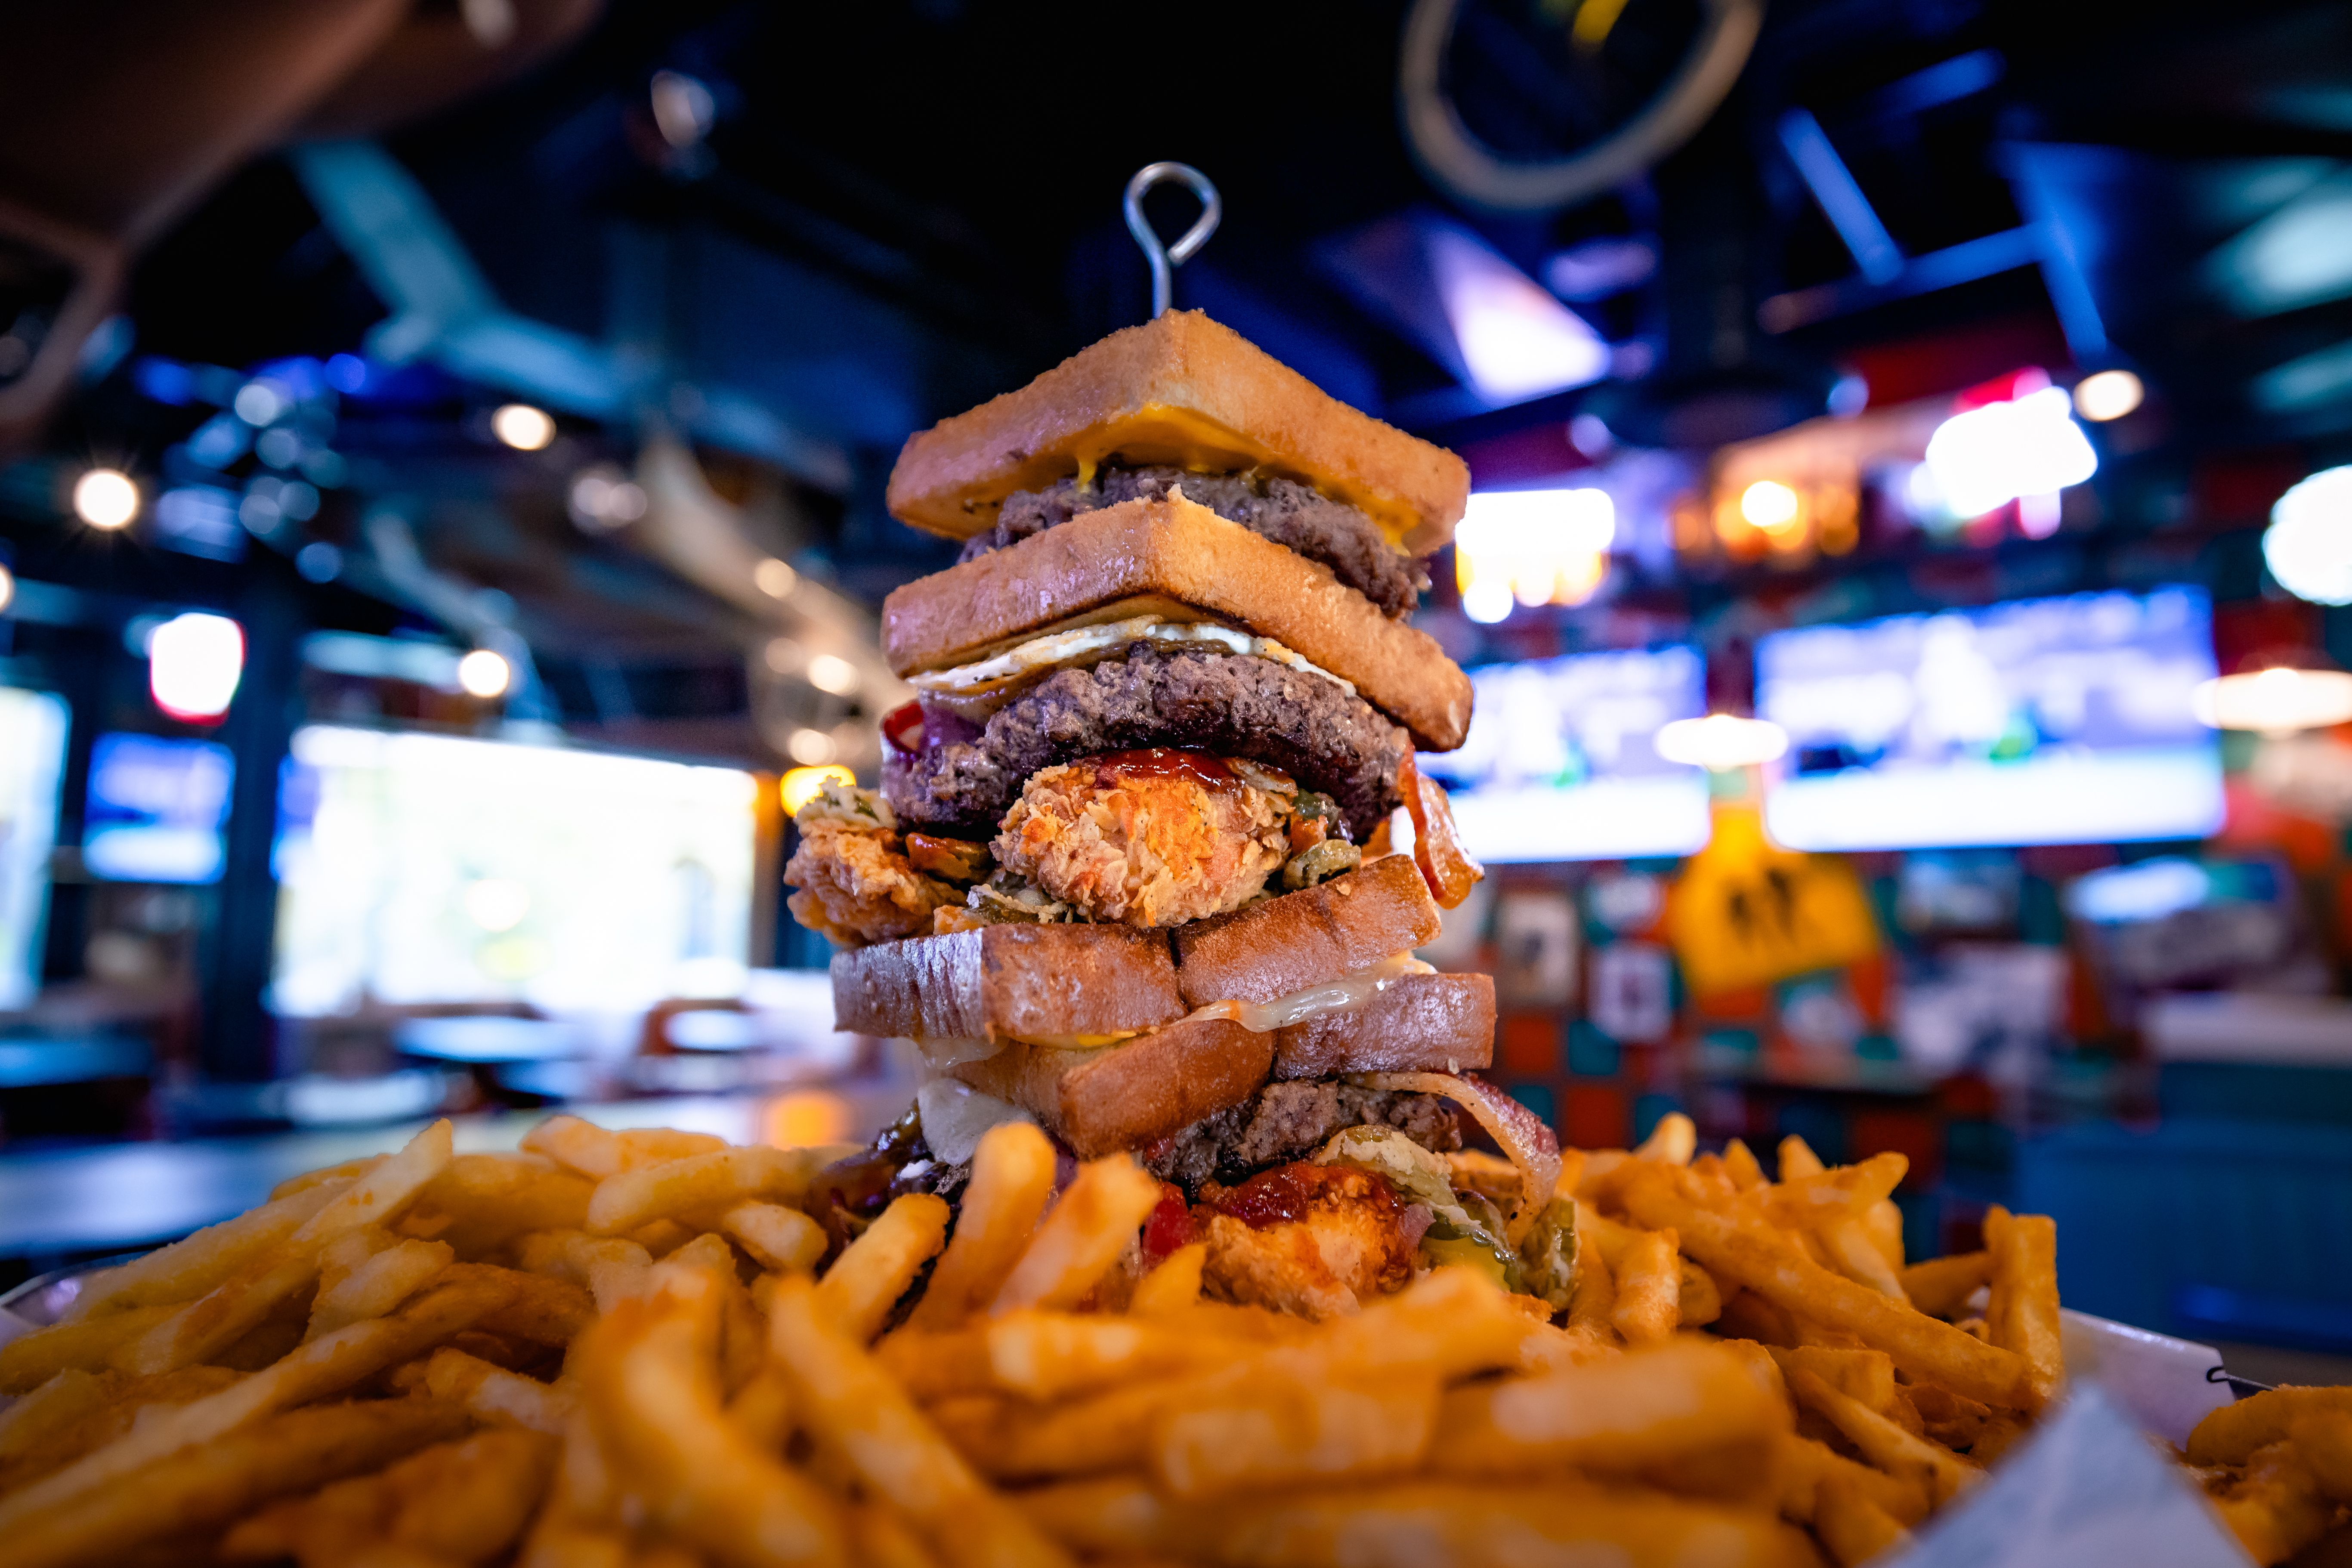 A food challenge burger with a massive patty melt on the exterior, a grilled cheese sandwich in the middle, and pulled pork, bacon, more burger patties, two fried eggs, fried jalapeños, fried pickles, boneless chicken wings, and barbecue and Sriracha sauces.